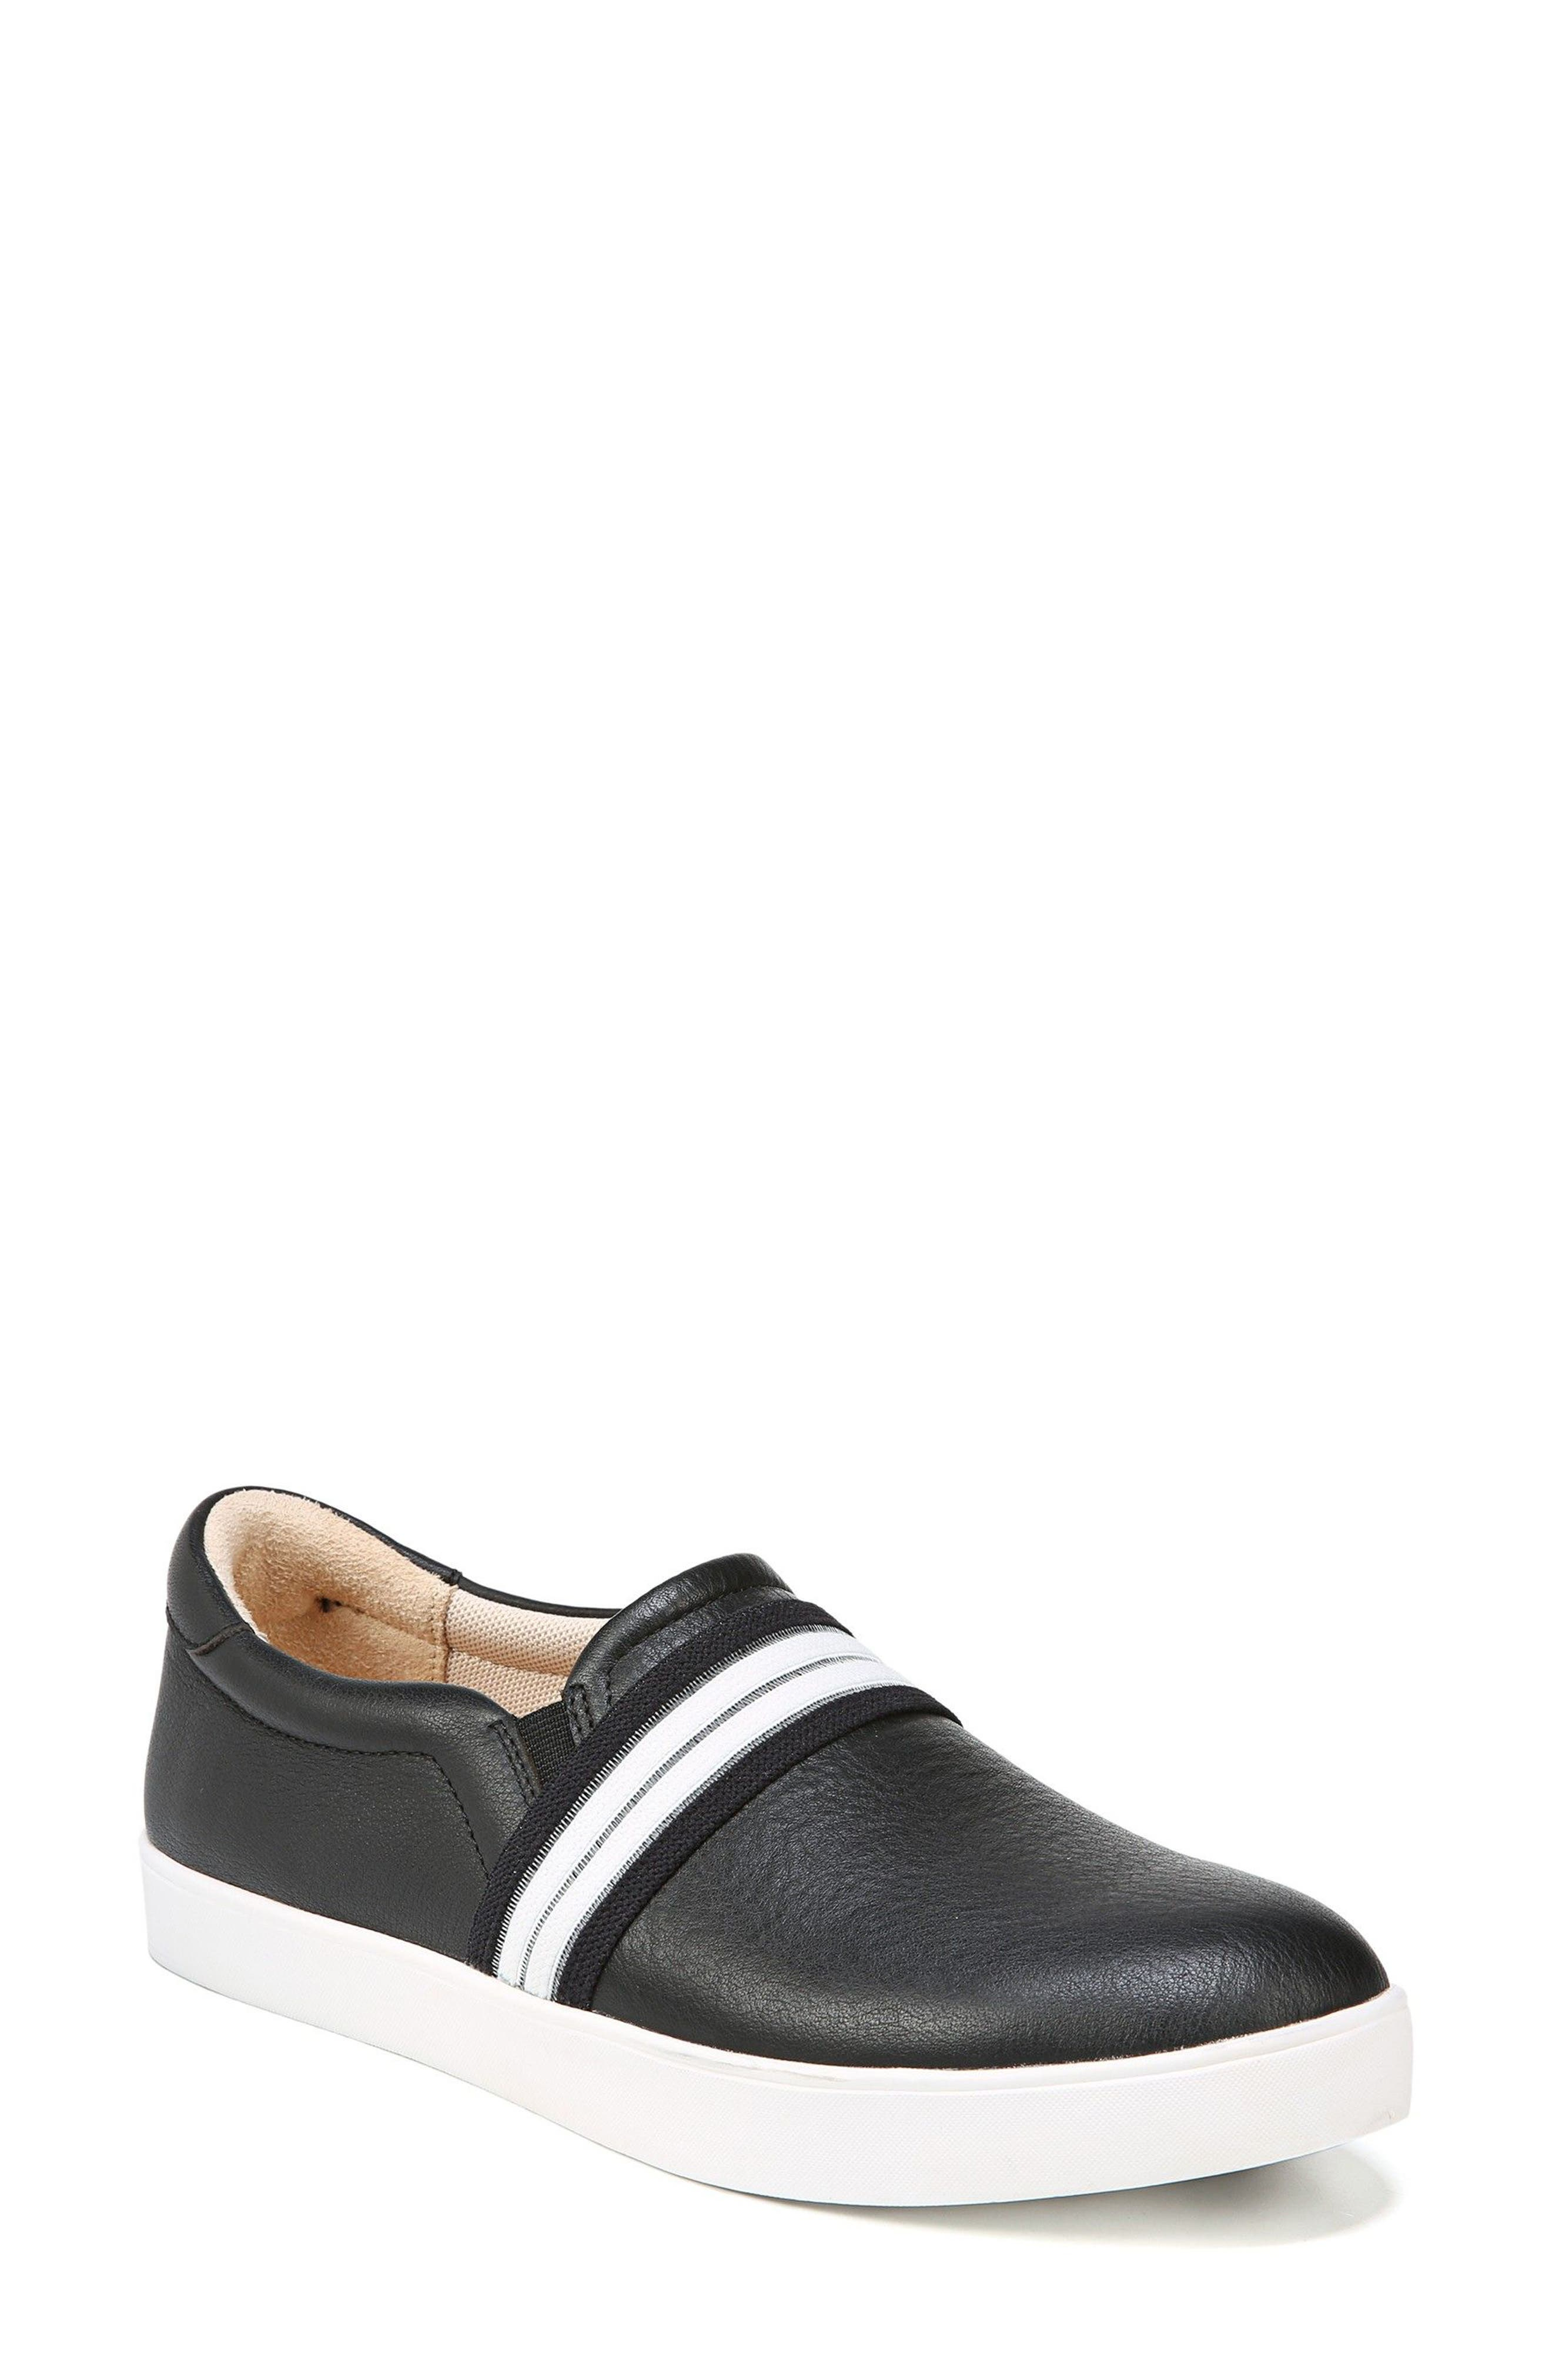 DR. SCHOLL'S Scout Slip-On Sneaker, Main, color, BLACK LEATHER 2